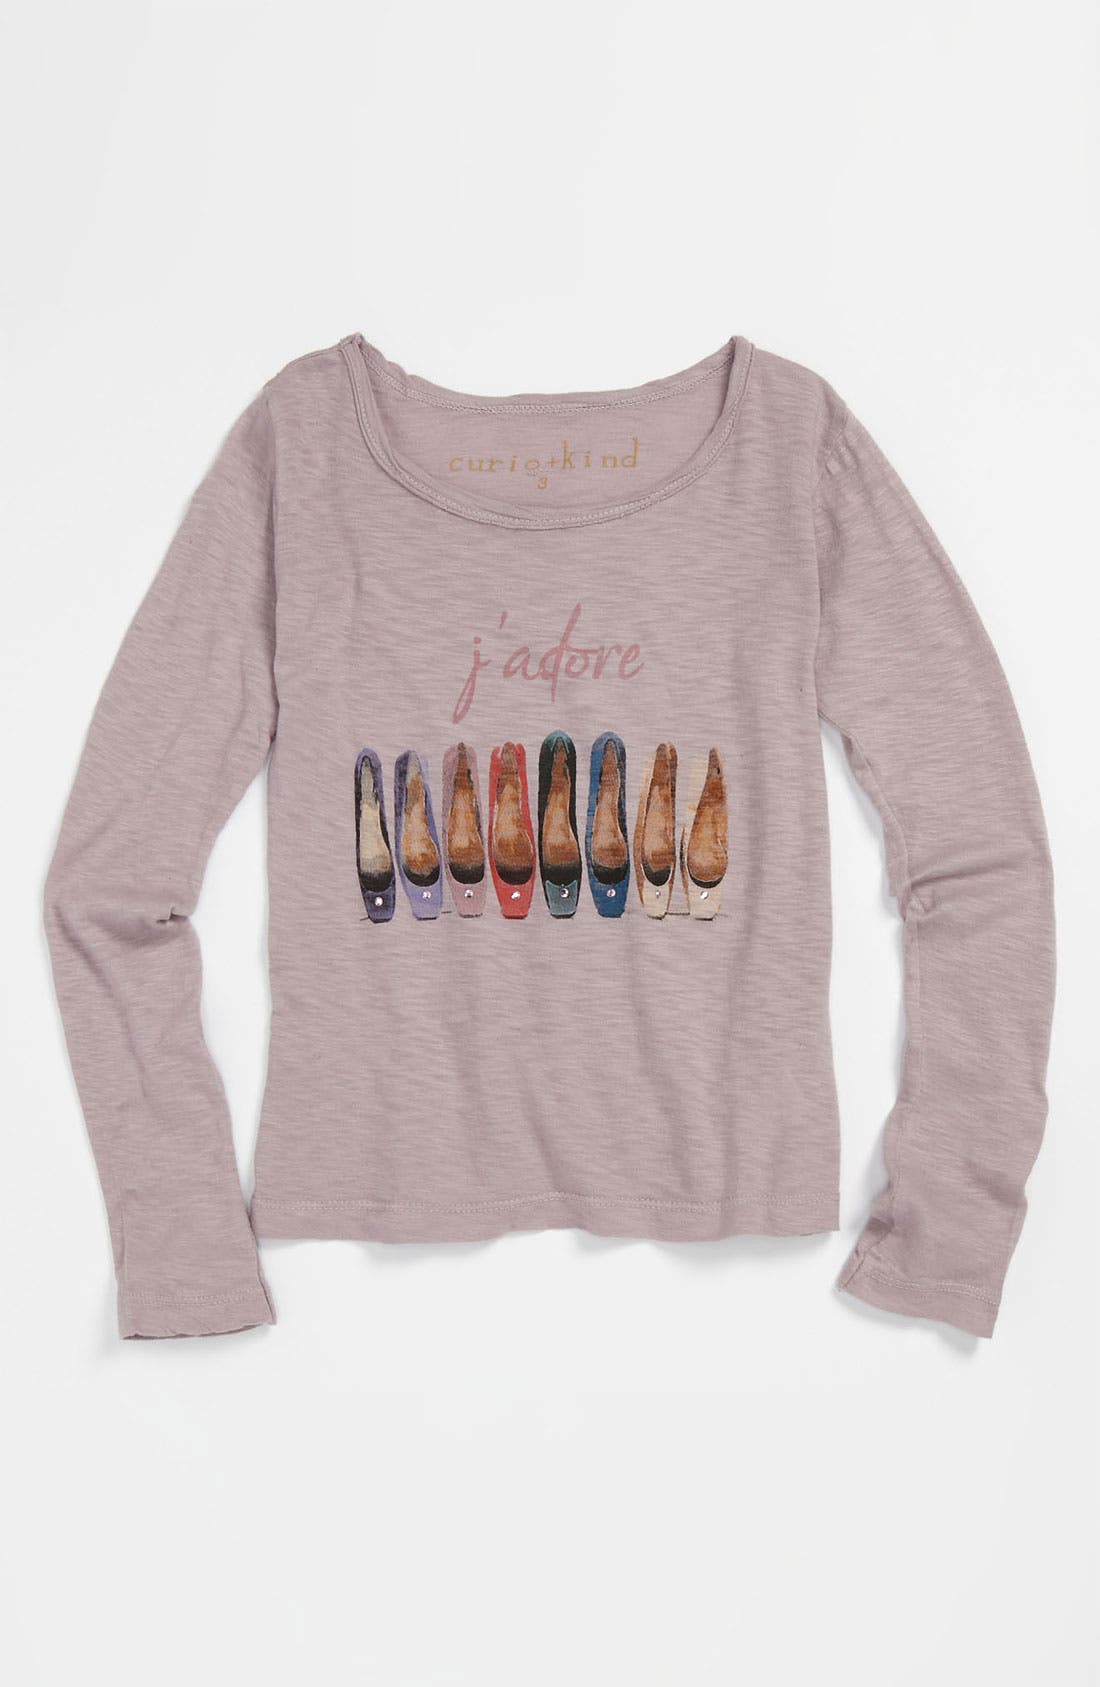 Main Image - Curio+Kind Embellished Long Sleeve Tee (Toddler)